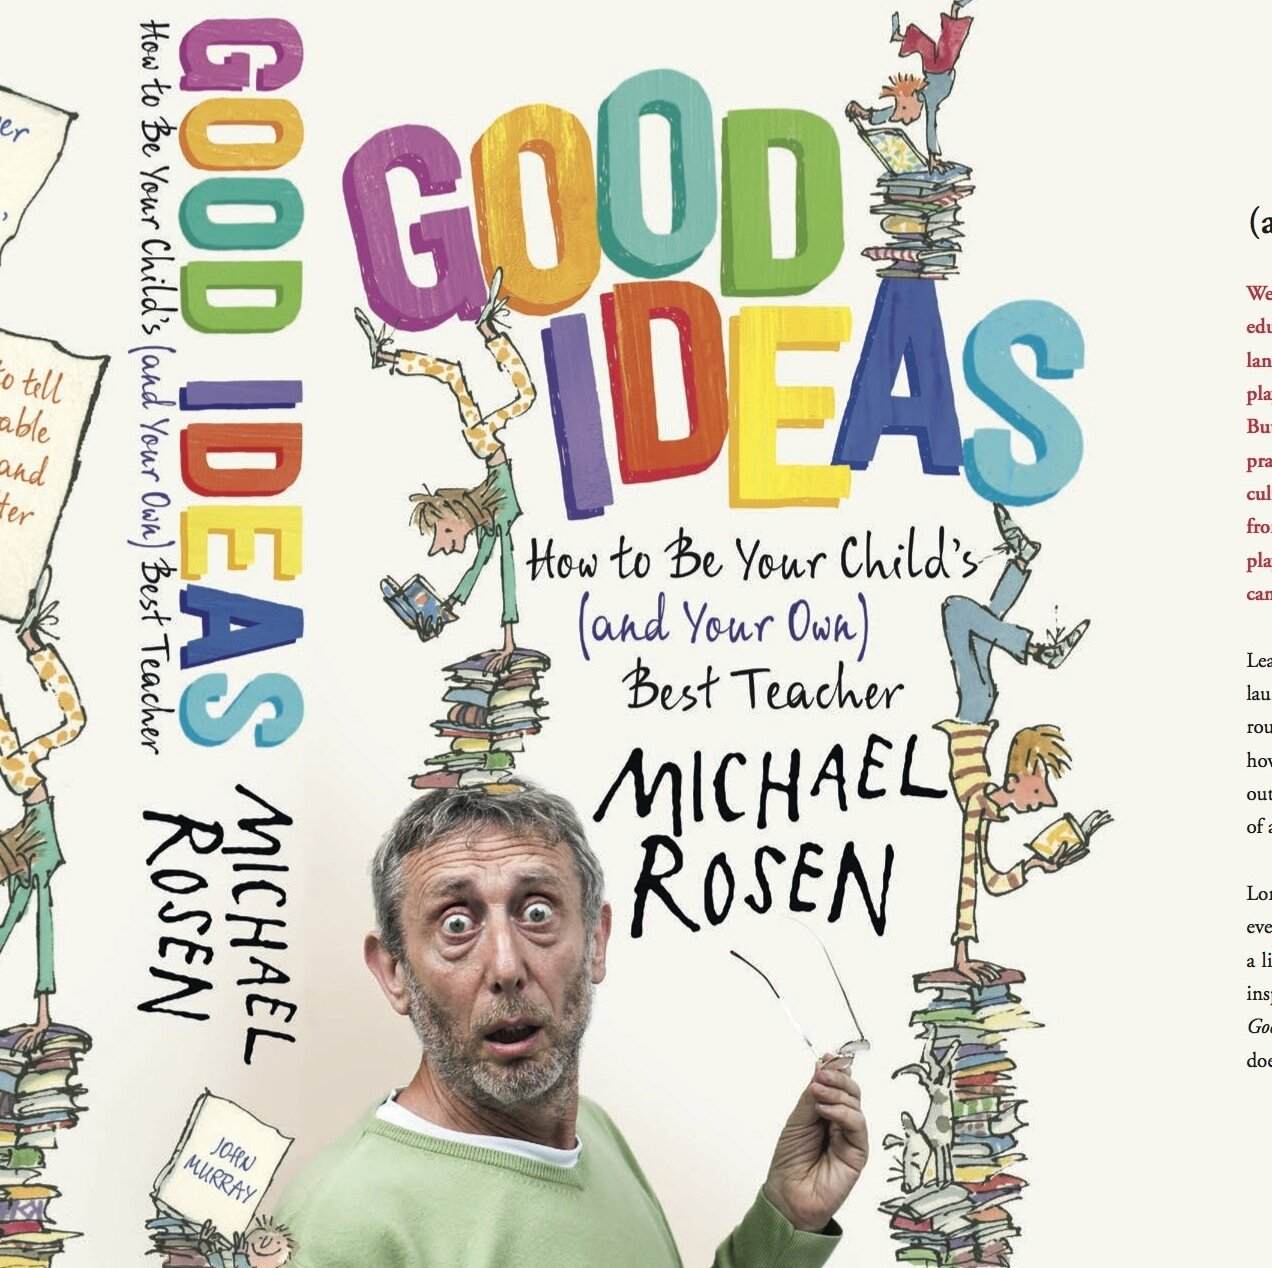 Michael Rosen is author of Good Ideas: How to be Your Child's (and Your Own) Best Teacher. On The Sleep Matters Club, he talks about the importance of bedtime stories.